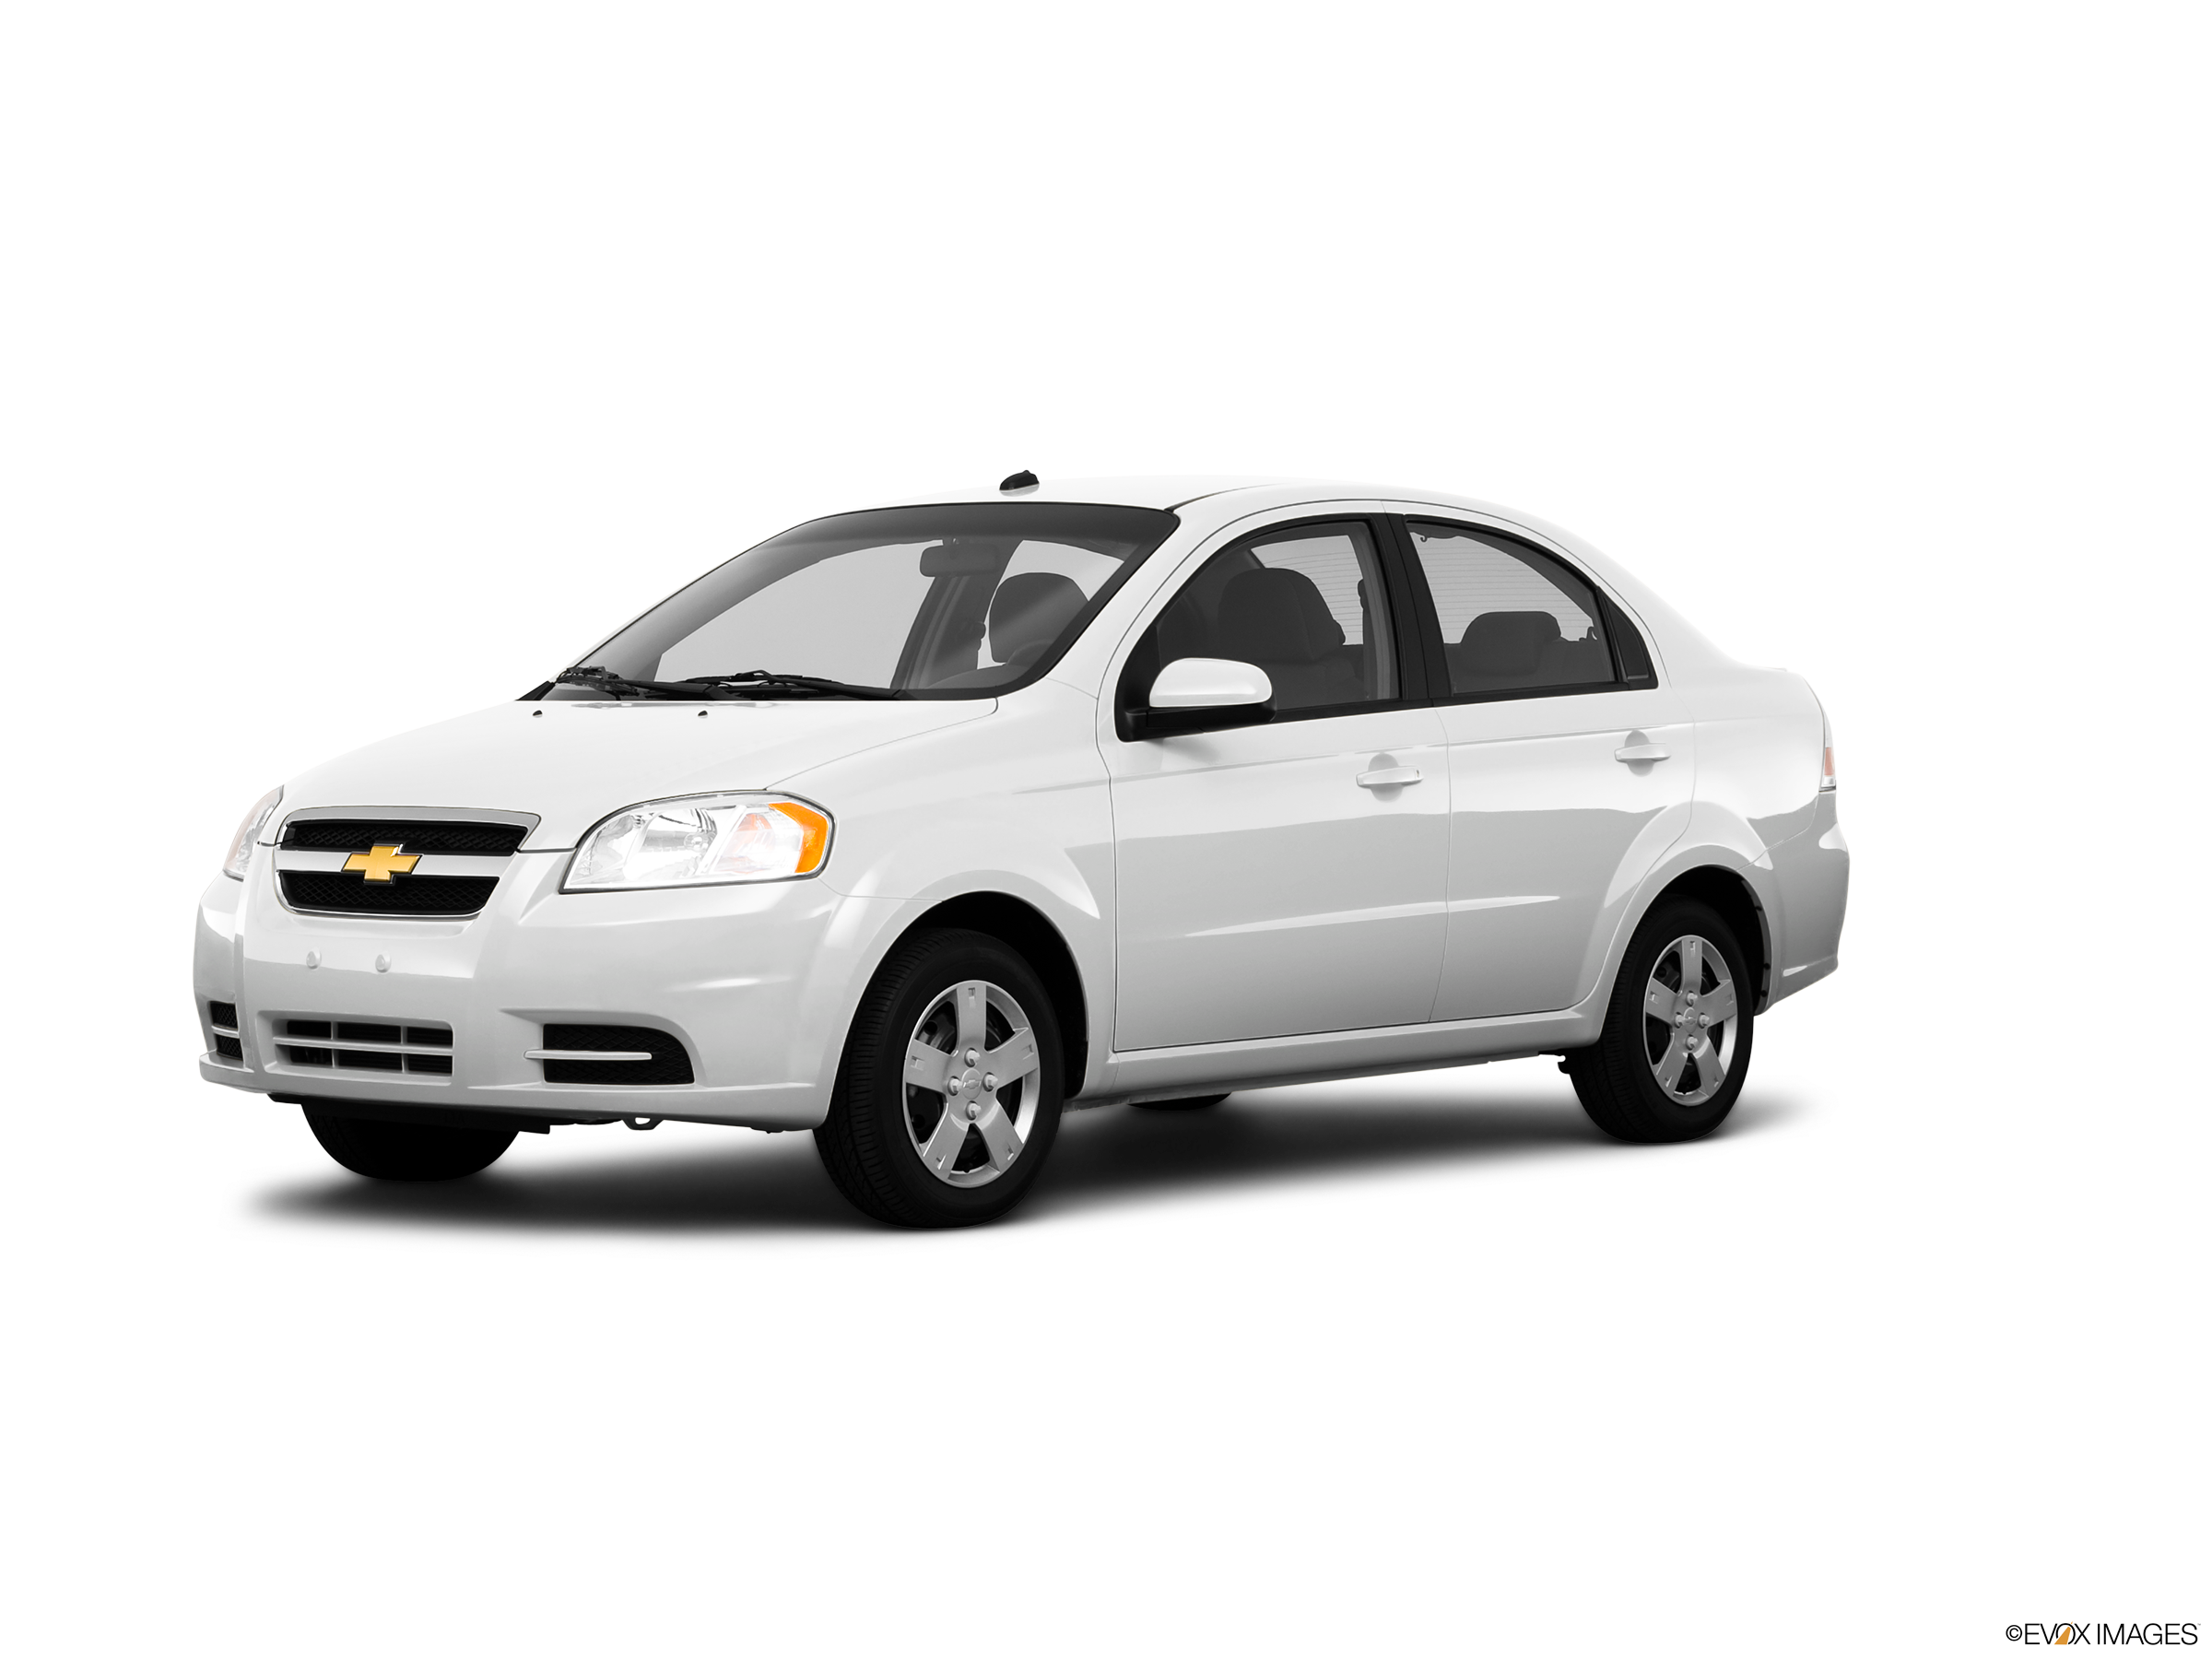 Used 2010 Chevrolet Aveo Values Cars For Sale Kelley Blue Book